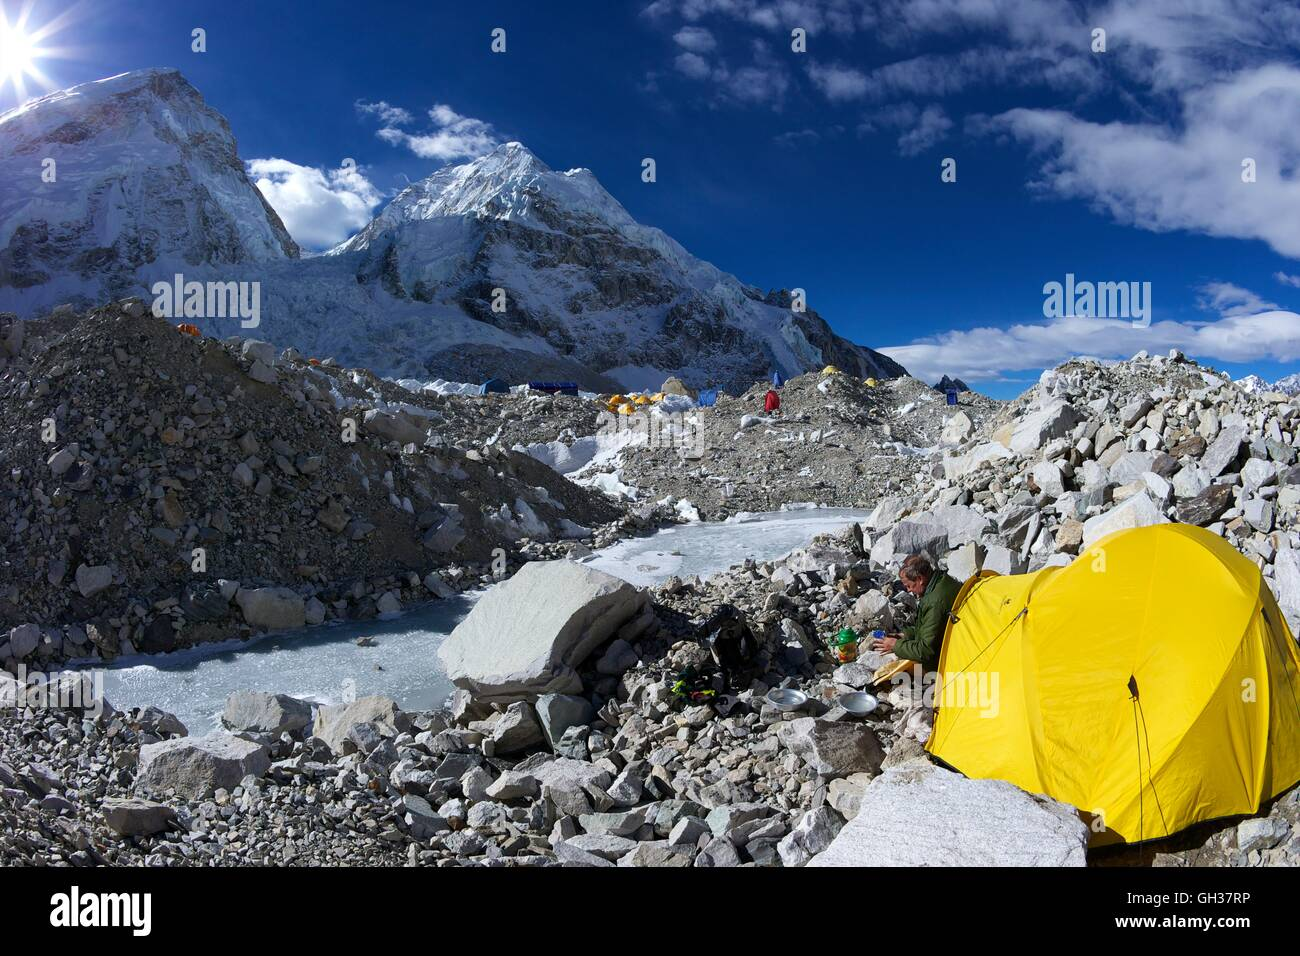 Camping on the Khumbu icefall at Everest Base Camp, Sagarmatha National Park, Solukhumbu District, Nepal, Asia - Stock Image